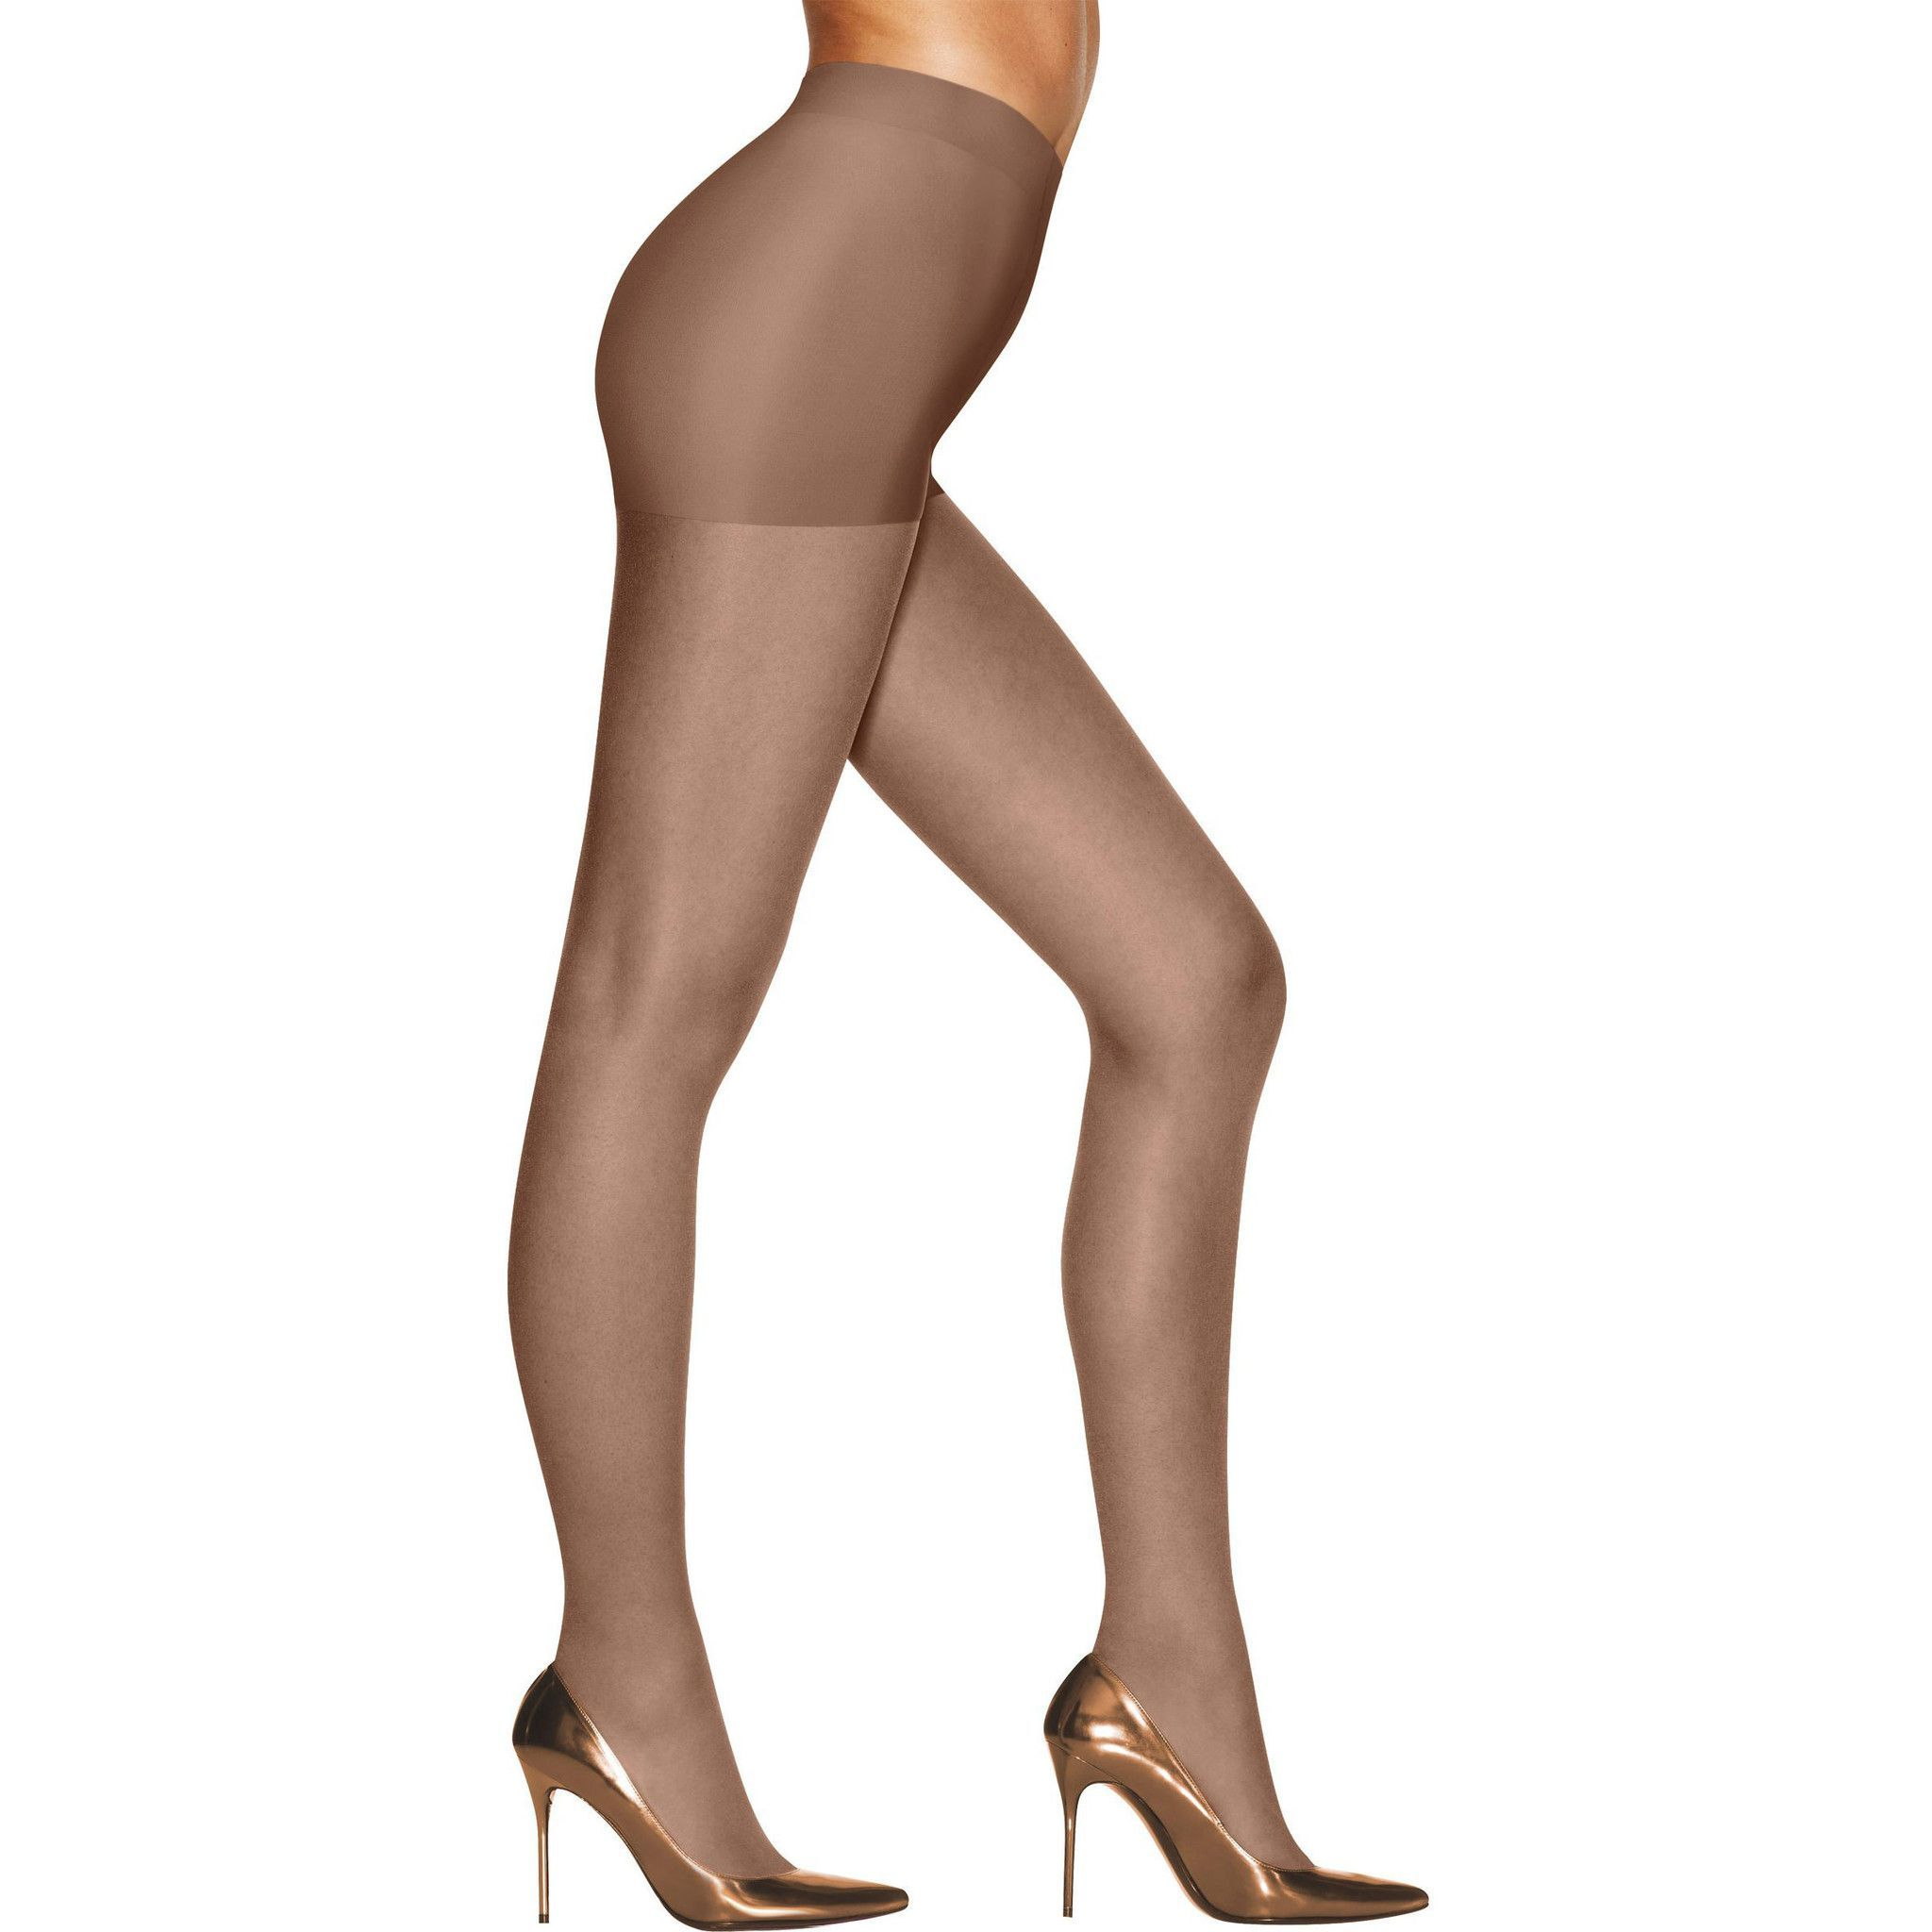 ab4281b415dc Hanes Silk Reflections Sunkissed Ultra Sheer Control Top   Hosiery ...